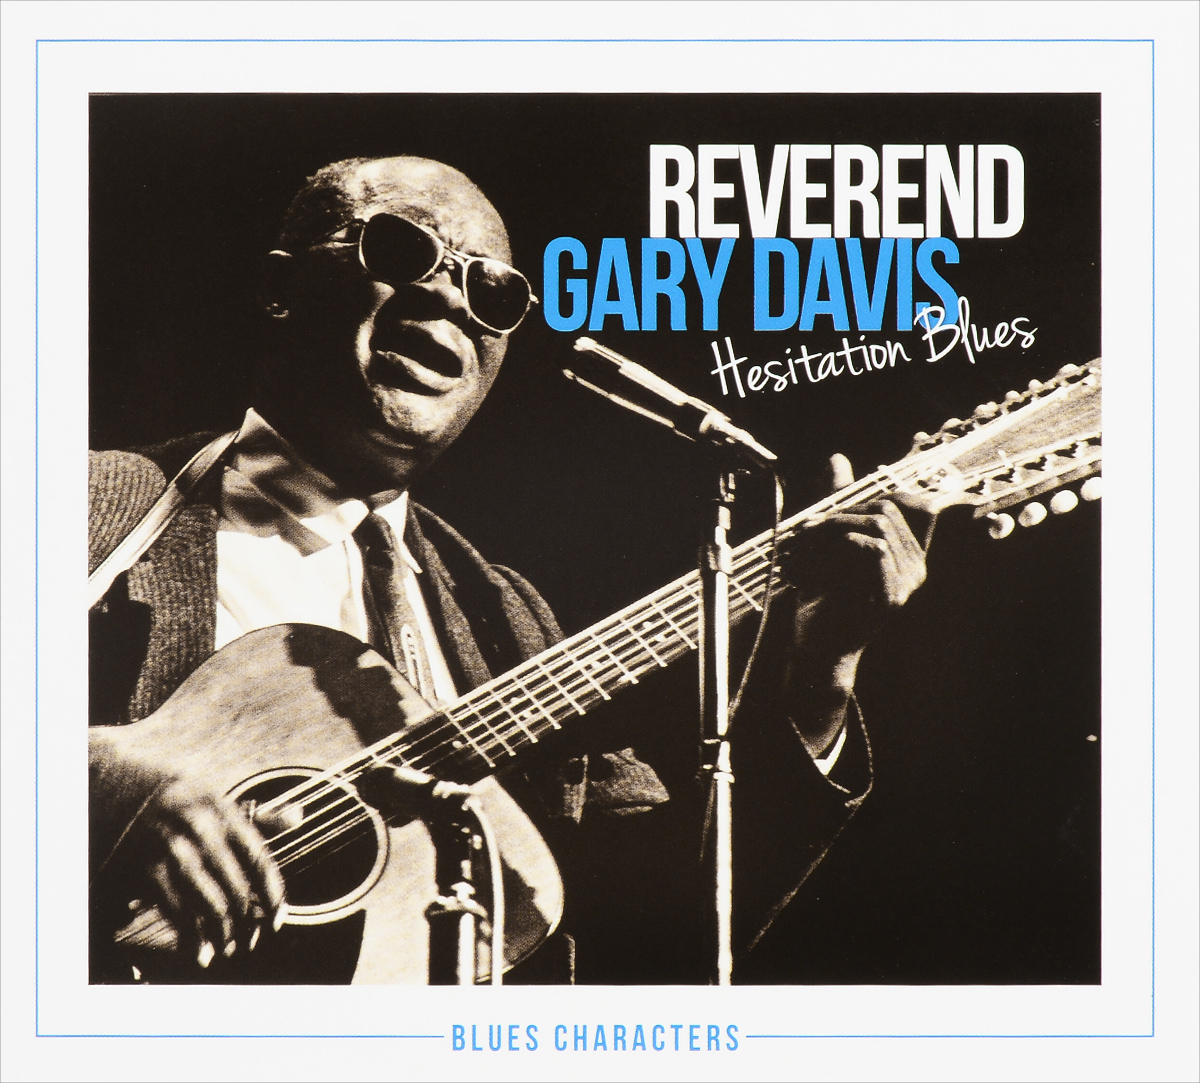 Гари Дэвис Reverend Gary Davis. Hesitation Blues (2 CD) joseph thomas le fanu guy deverell 1 гай деверелл 1 на английском языке